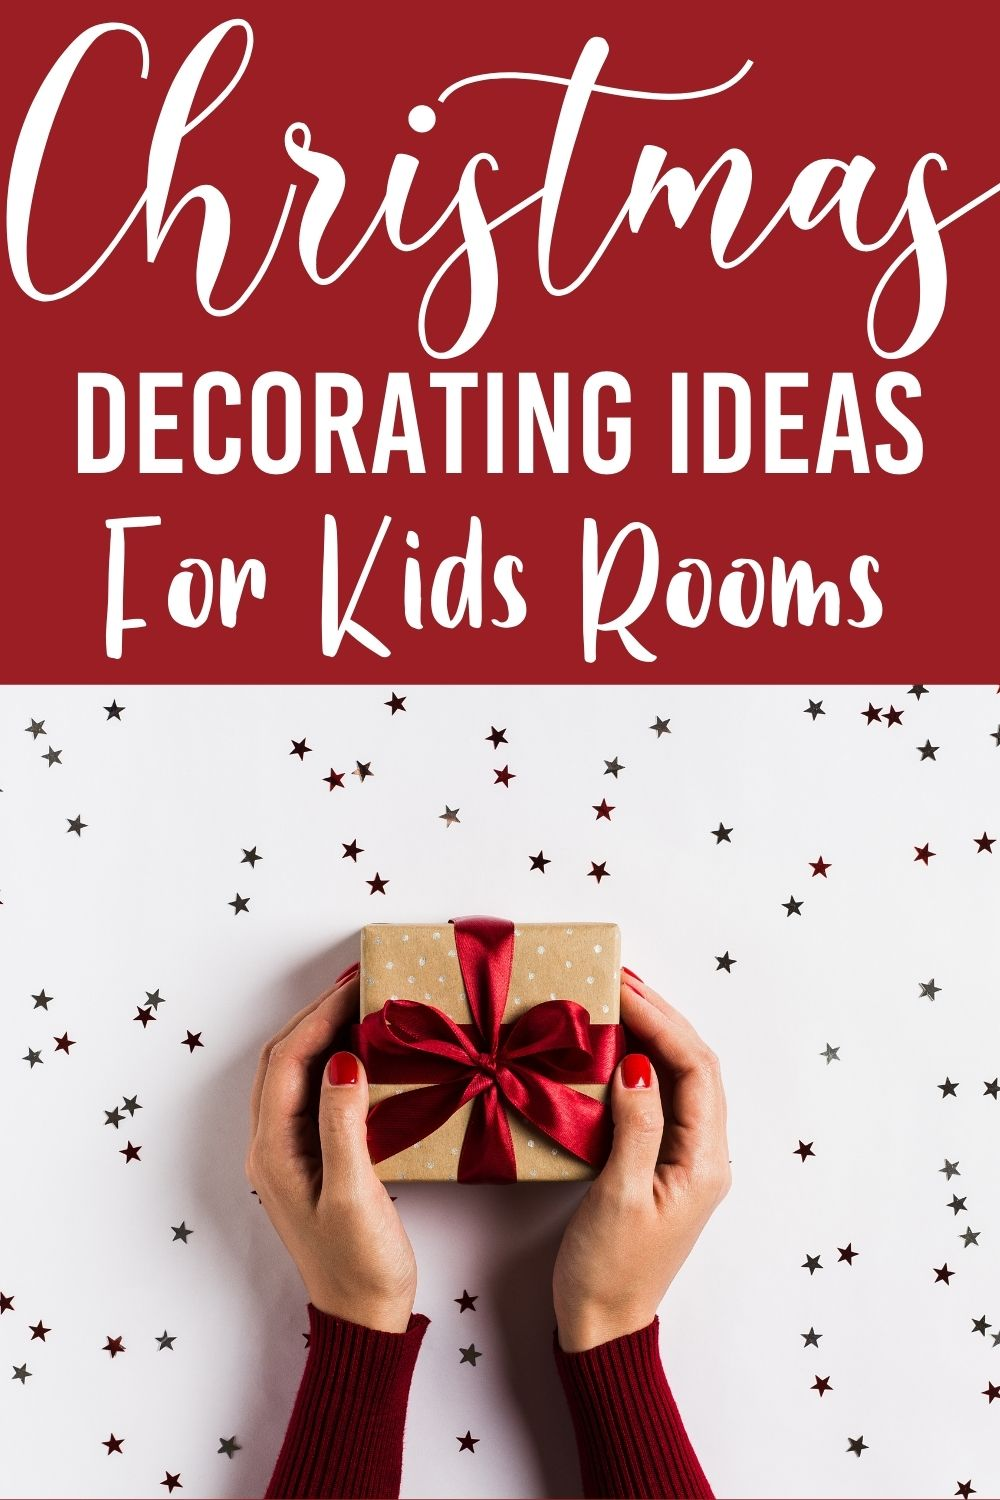 Get the kids into the holiday spirit with Christmas decorating ideas for kids rooms.  These Christmas decoration ideas for kids will be perfect to get into the Christmas spirit. #ChristmasDecorationIdeasForKids #KidRoomChristmasIdeas #KidFriendlyChristmasDecorations via @homebyjenn